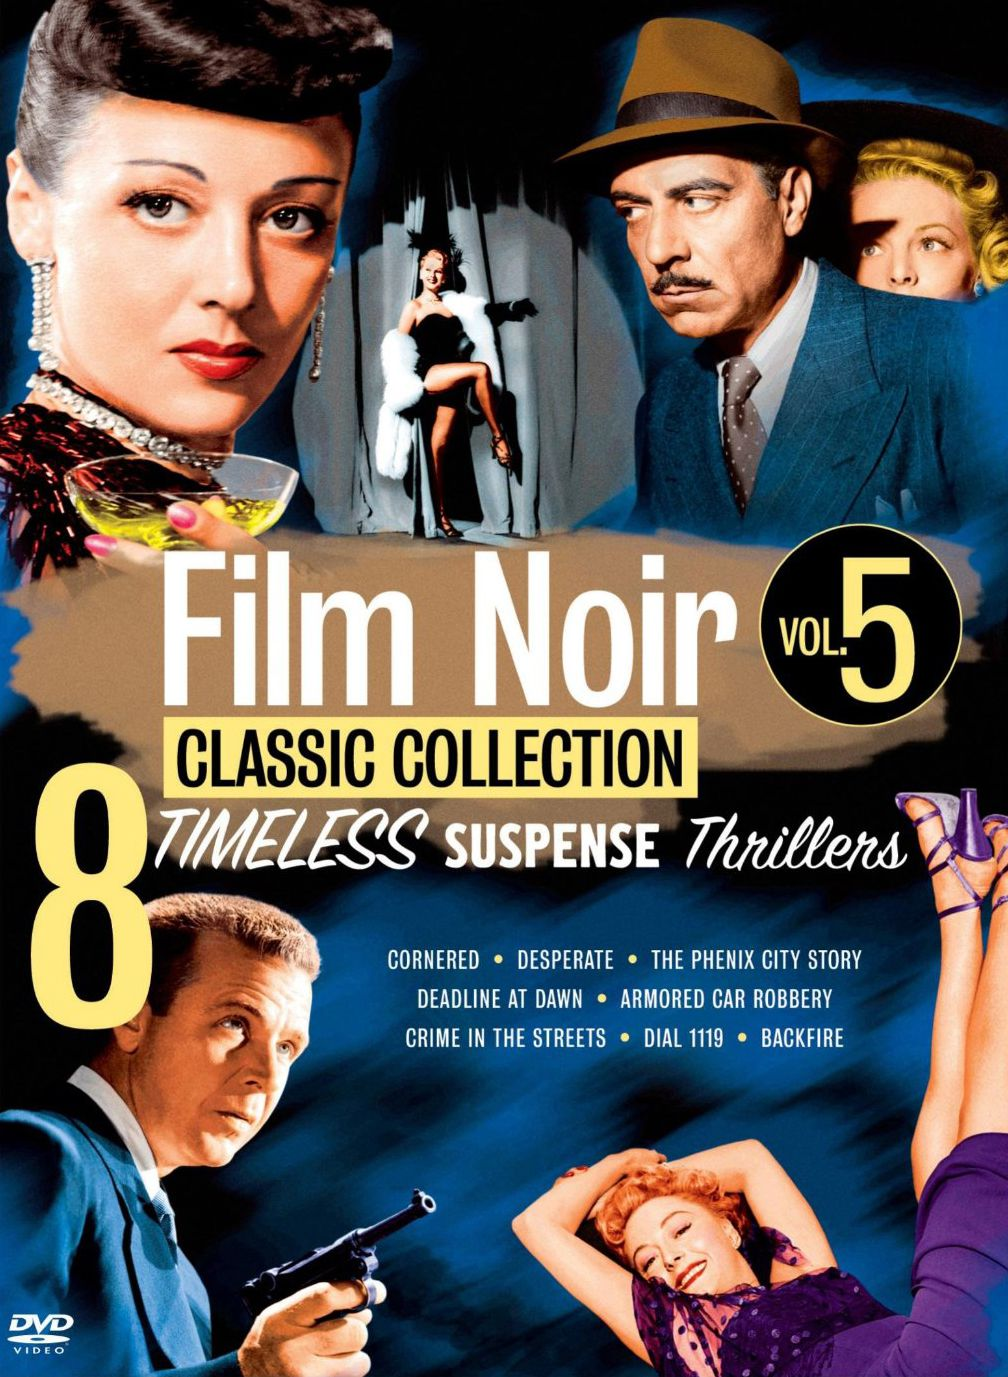 Film Noir Classic Collection: Volume 5